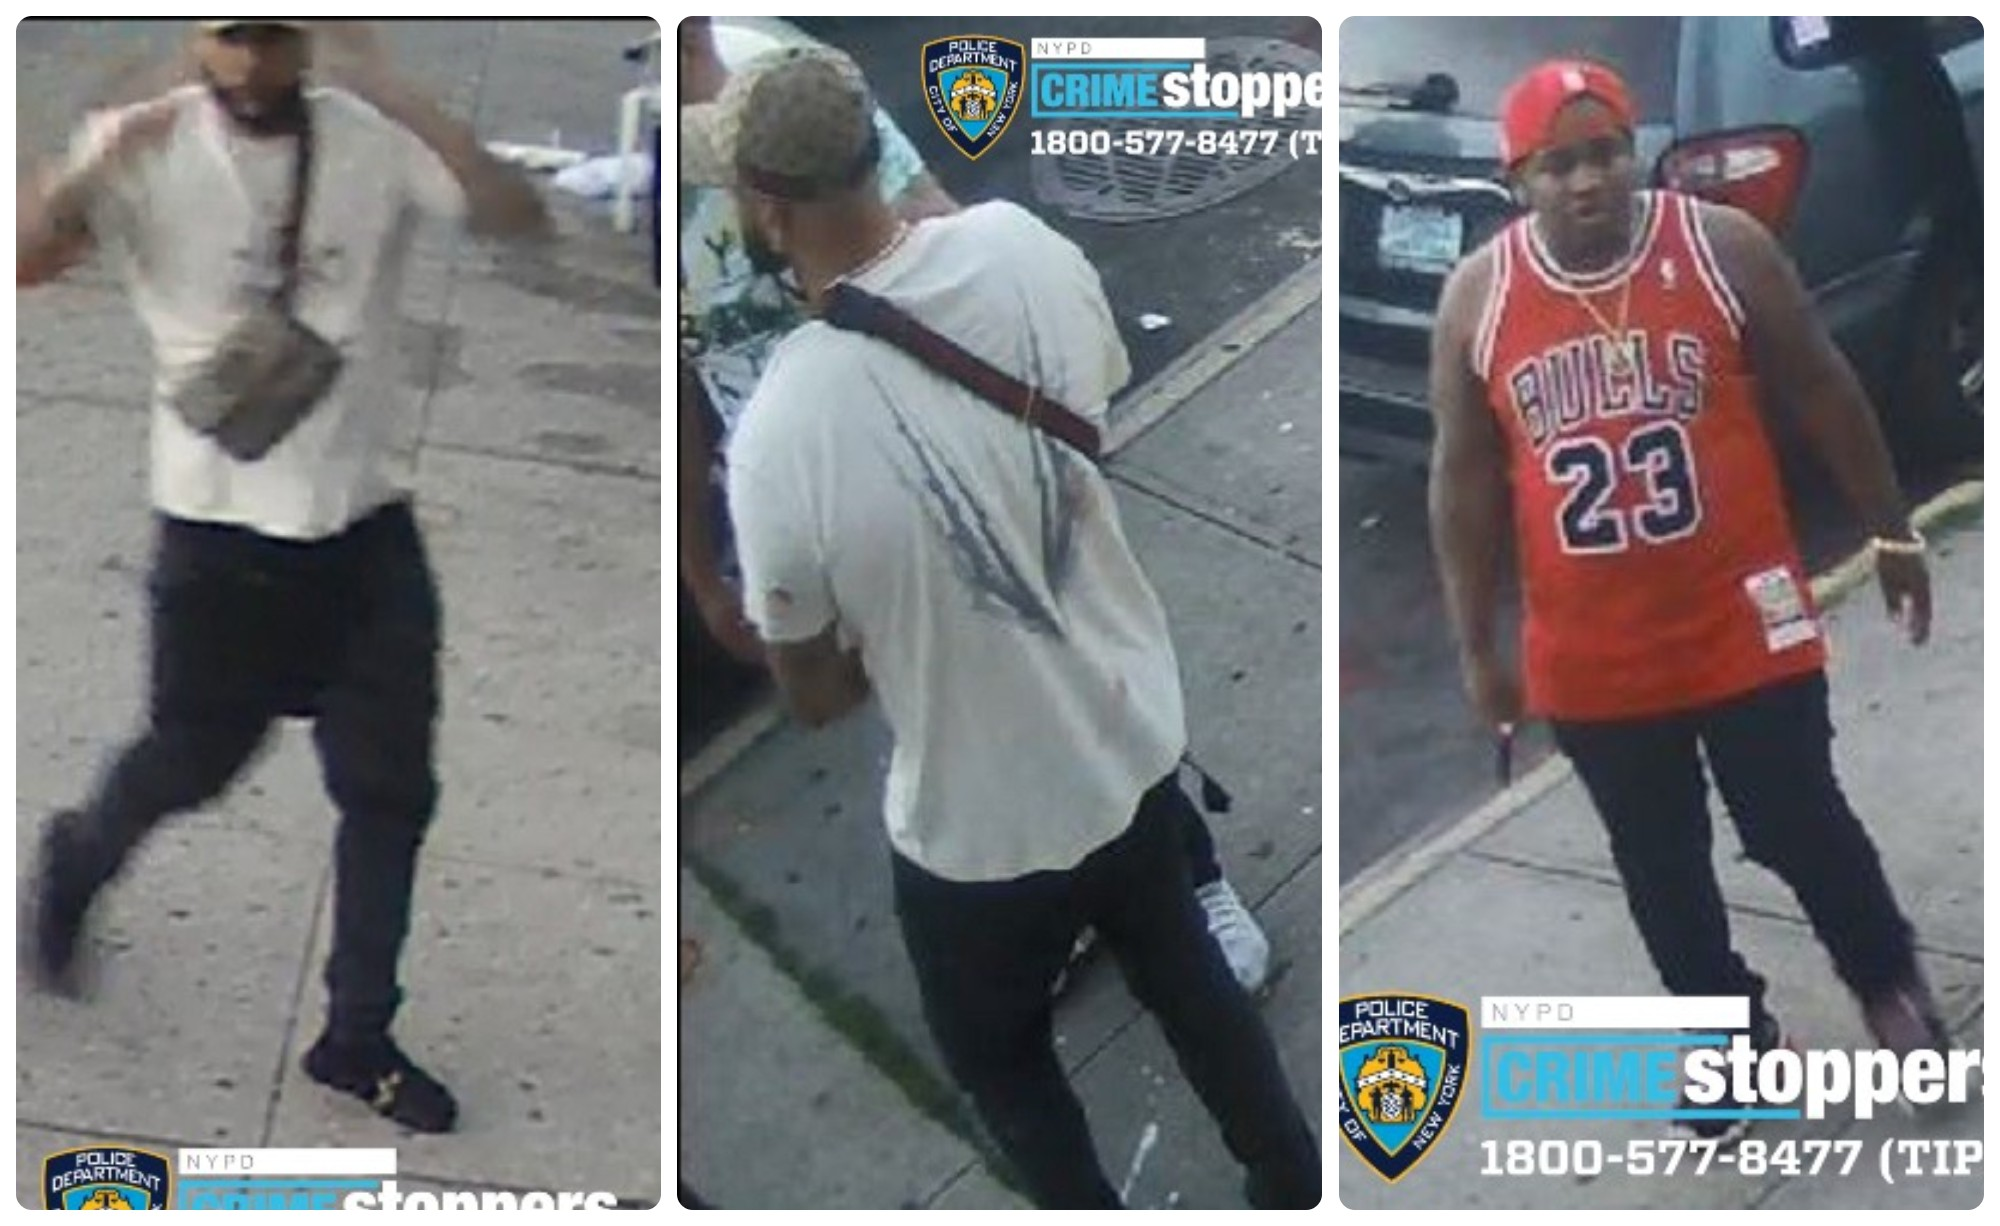 Suspect knife attack in Queens